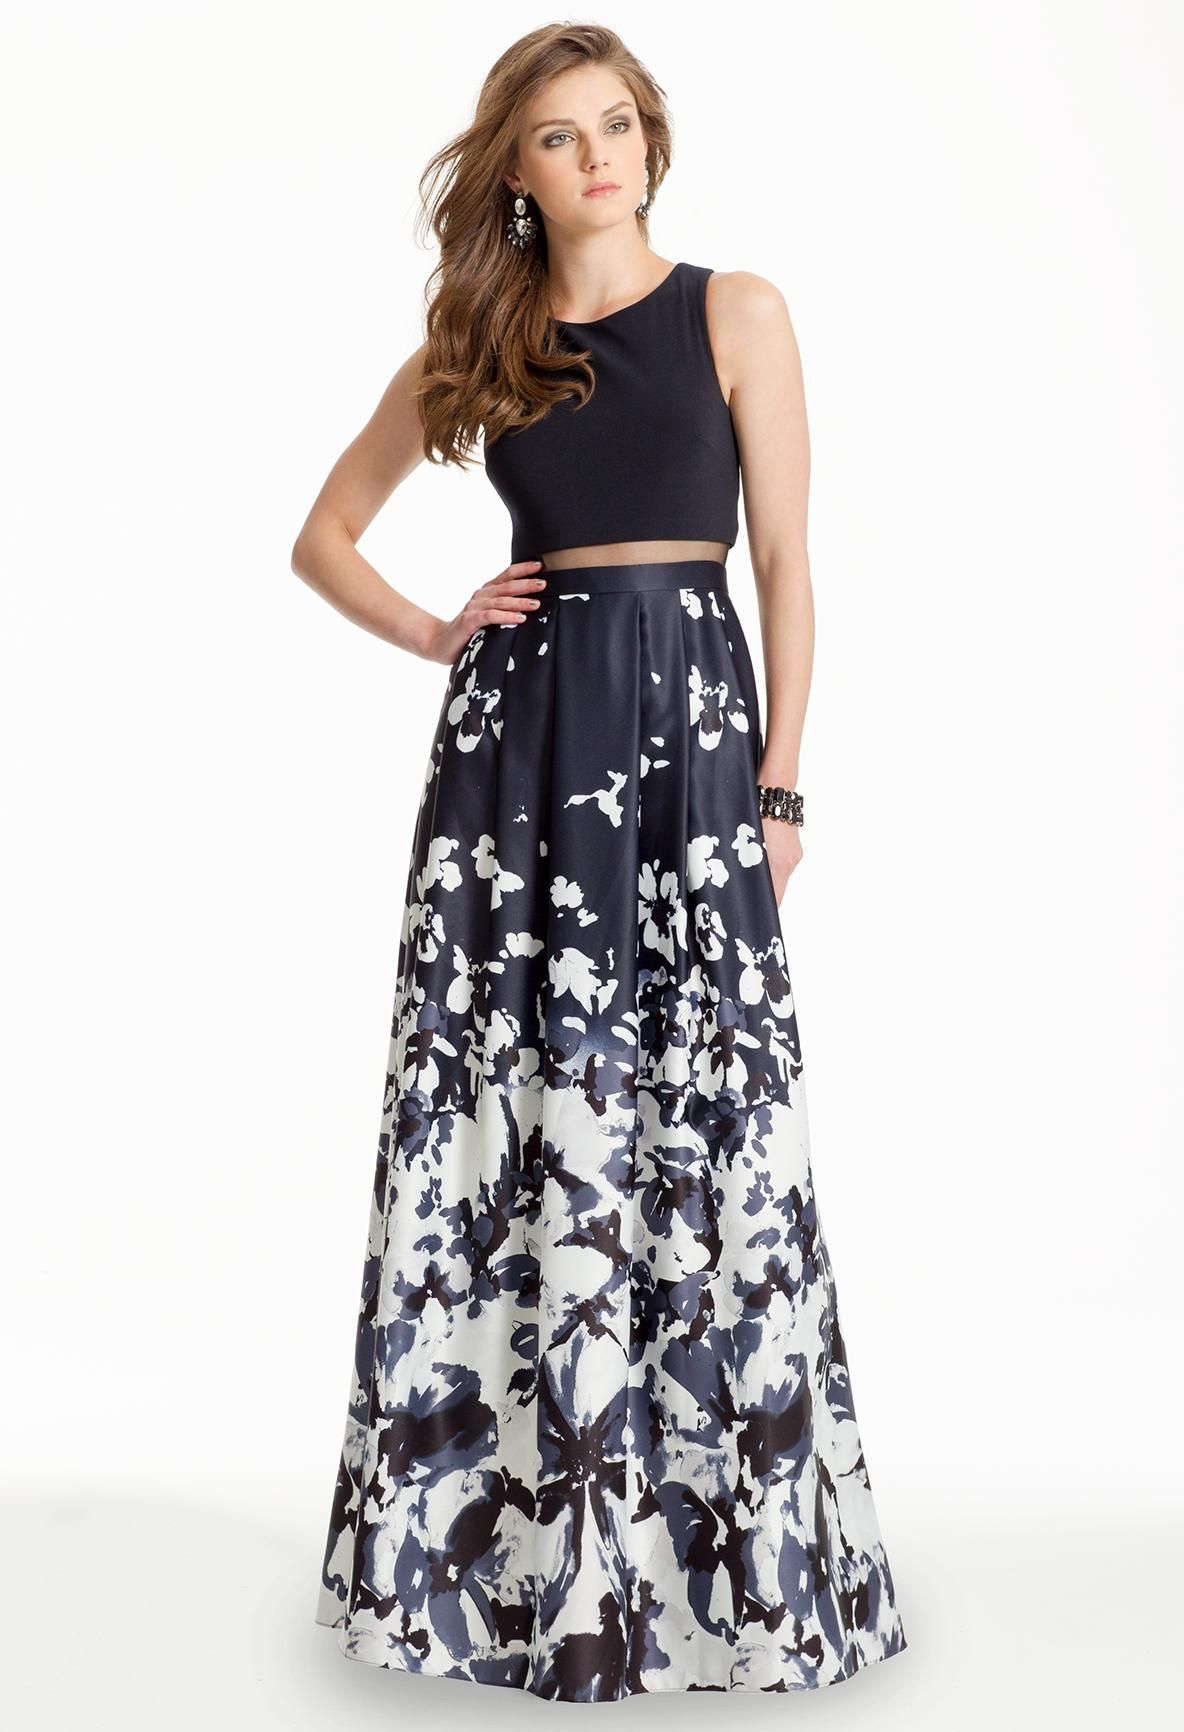 Two Piece for a Wedding Guest Dresses Dress images